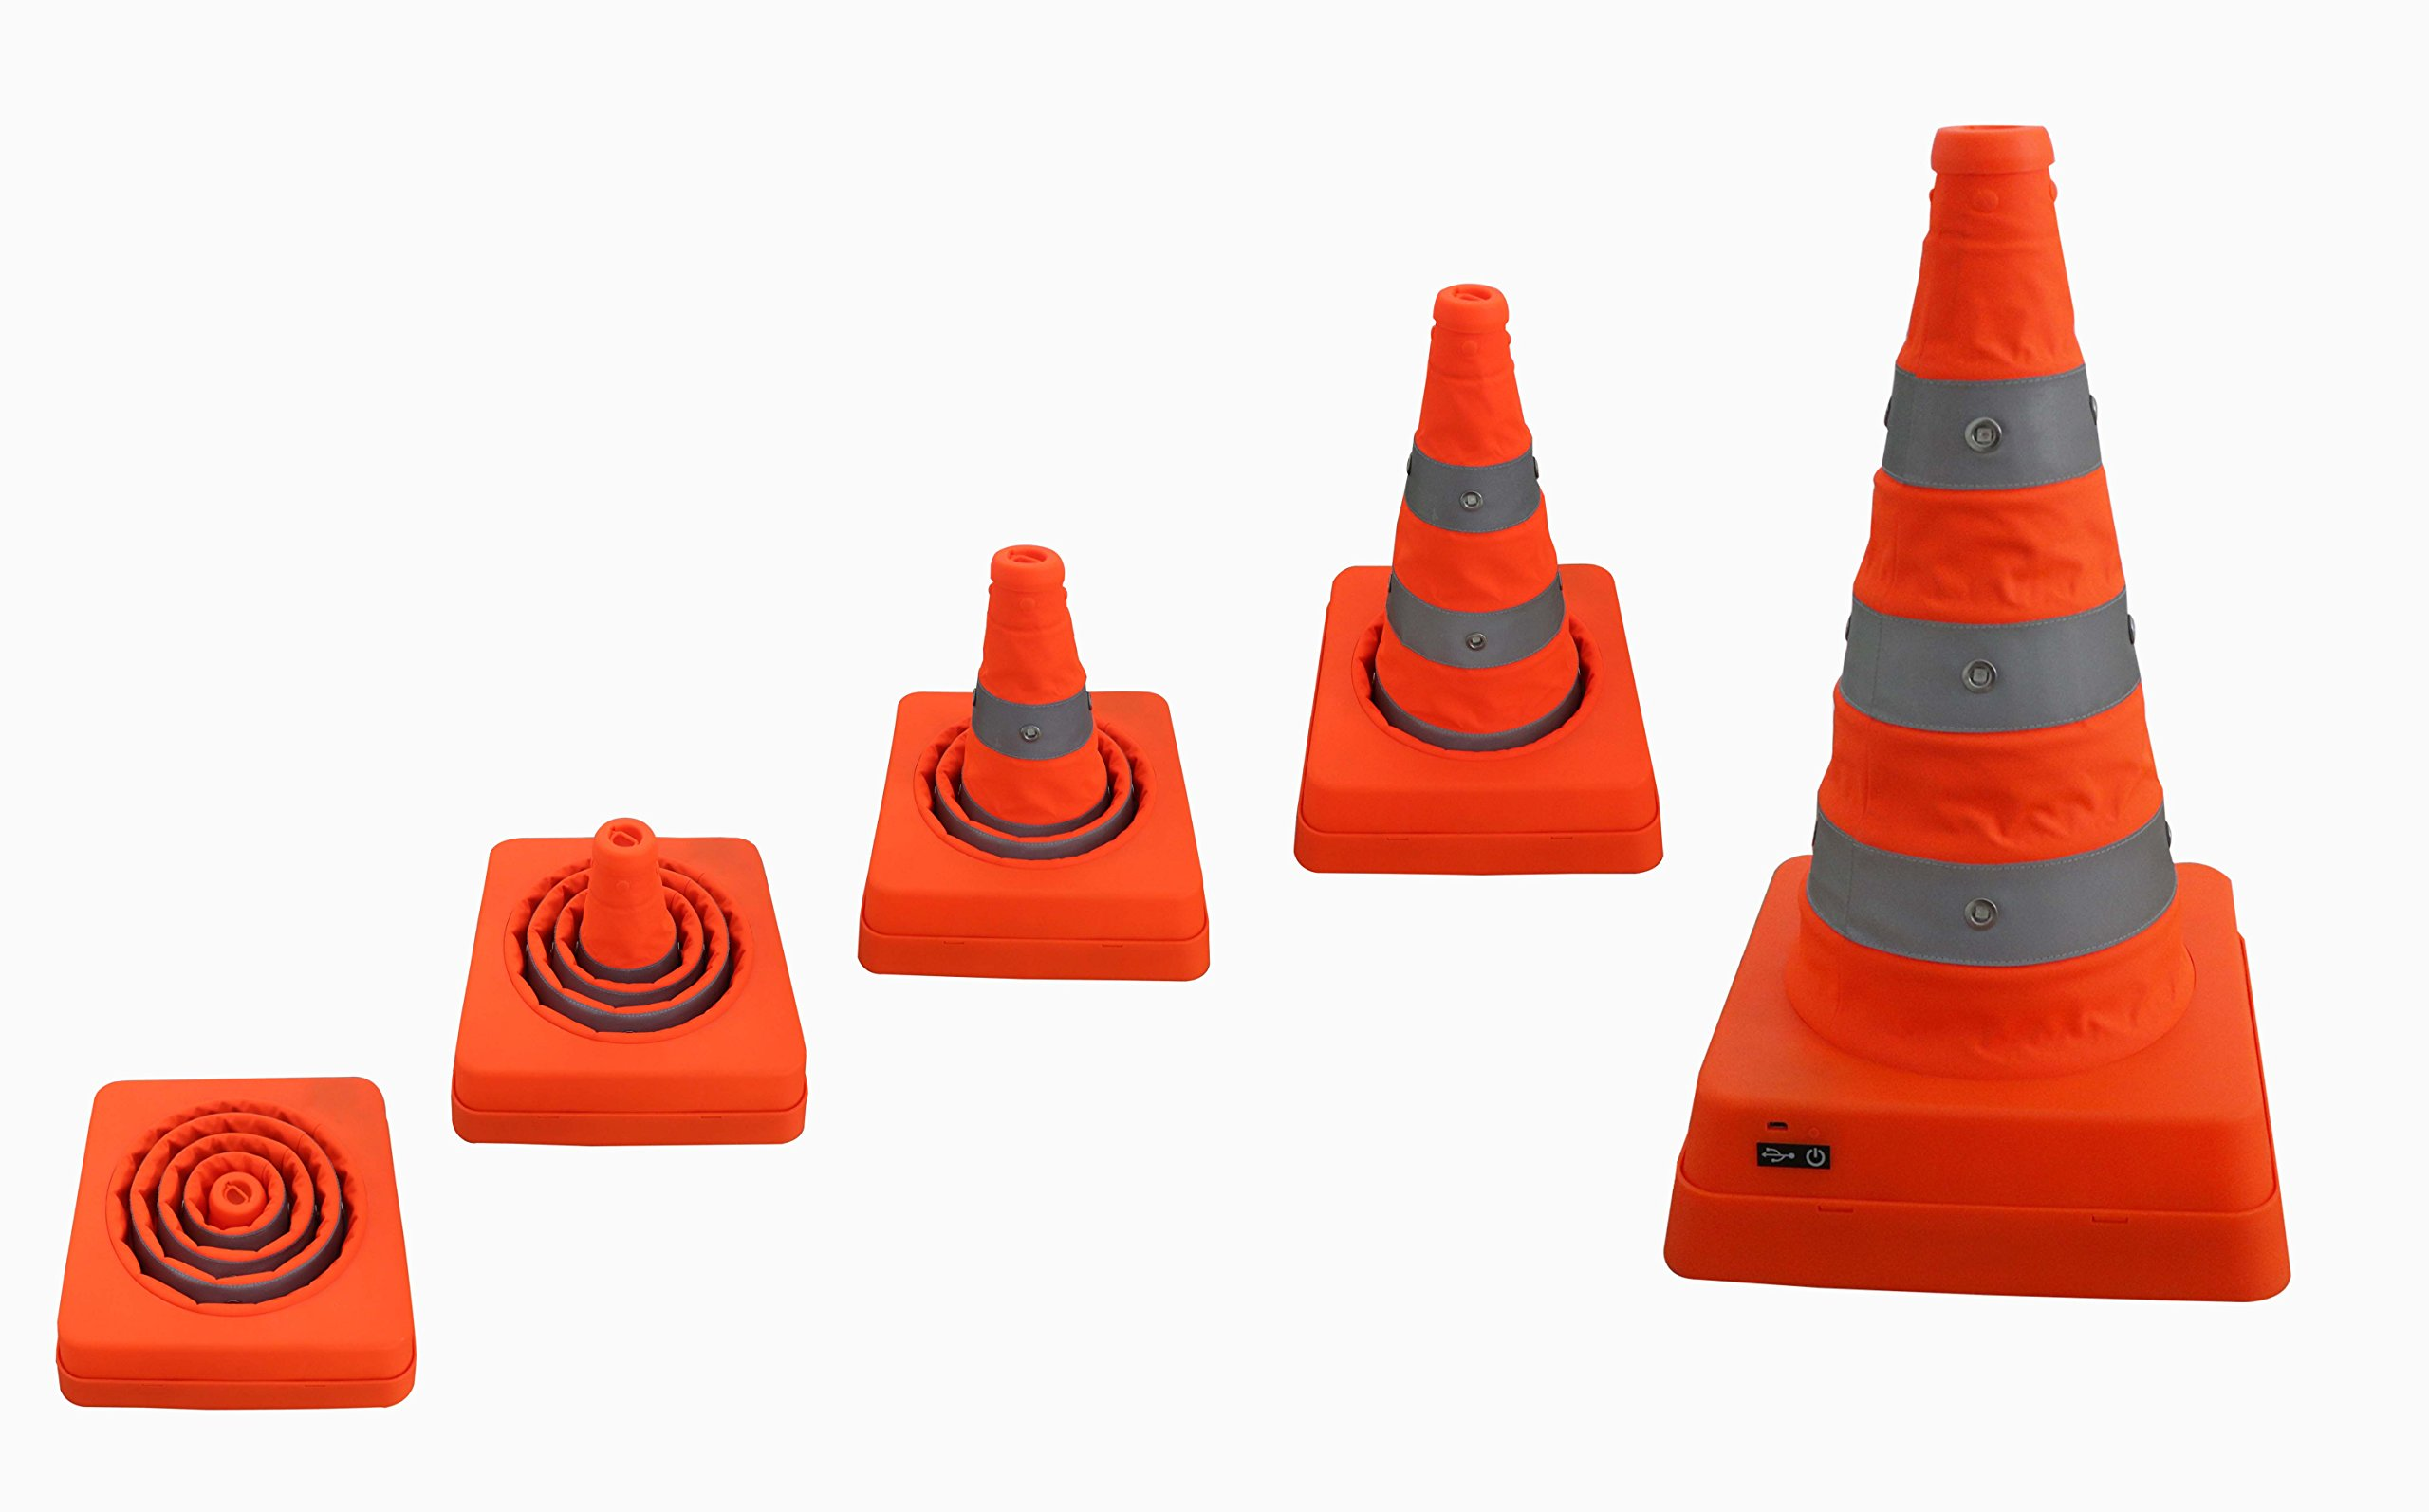 Safety Cones, Portable Traffic Cones with Nighttime LED Lights Multipurpose Reflective Collapsible Easy Storage, 18 Inch